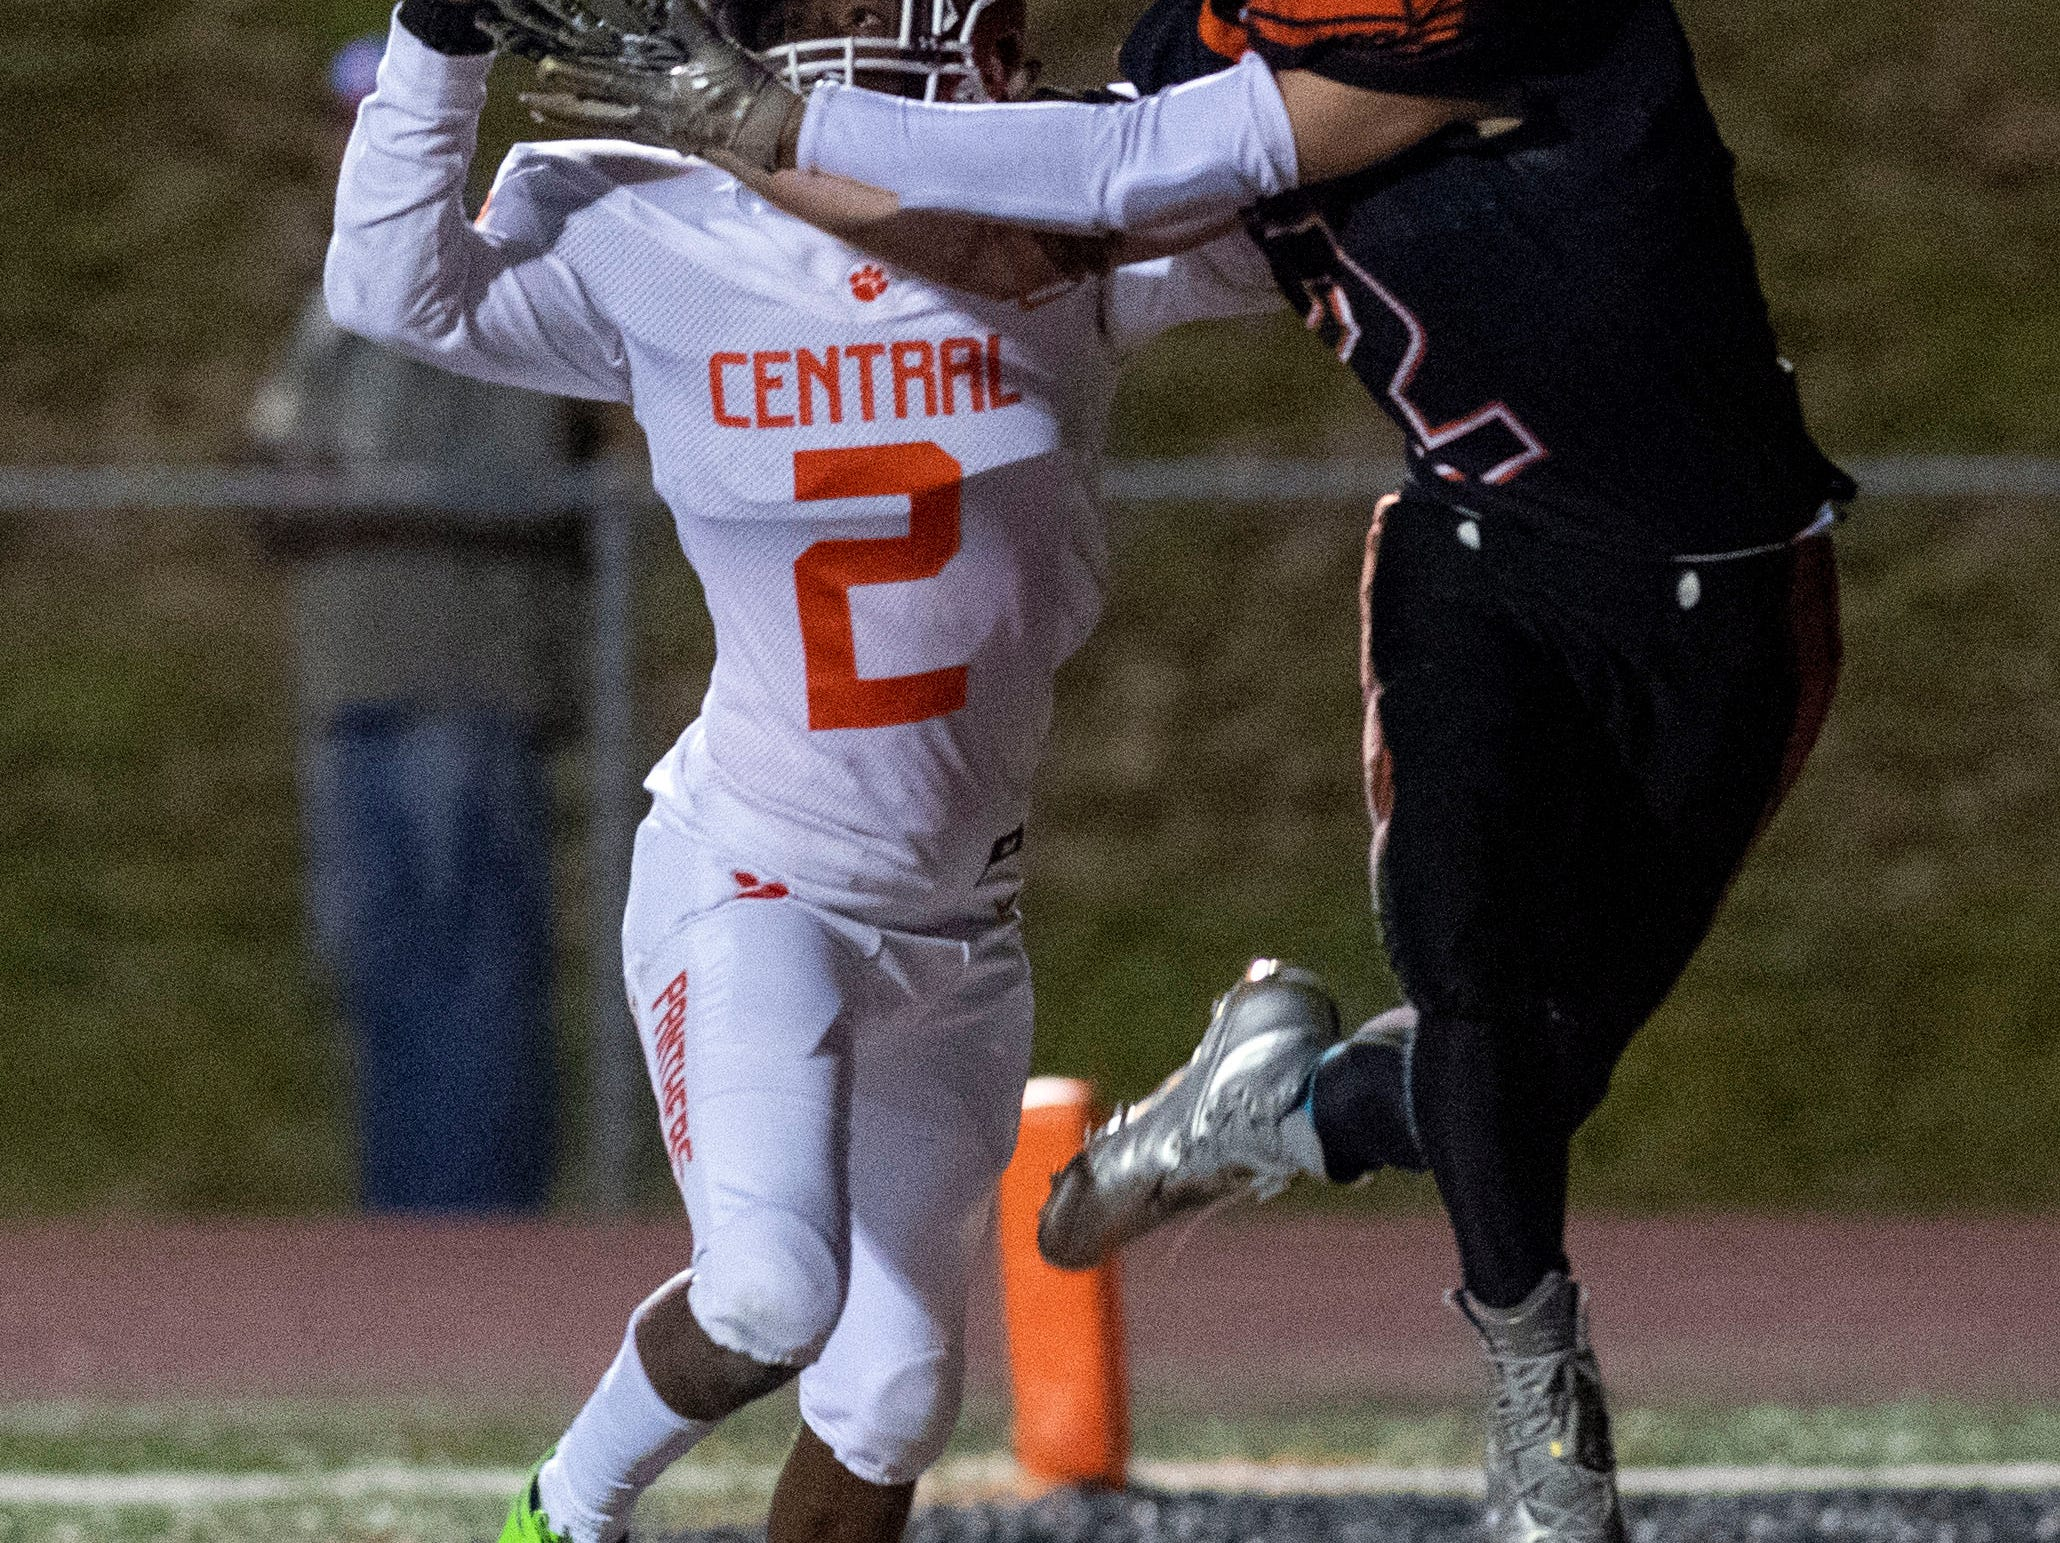 Central York's Darnell Johnson (2) knocks the ball out of reach for intended receiver Jordan Lagana (2) during a YAIAA Division I football game at Northeastern High School on Friday, Oct. 12, 2018. The Central York Panthers beat the Northeastern Bobcats, 44-7.